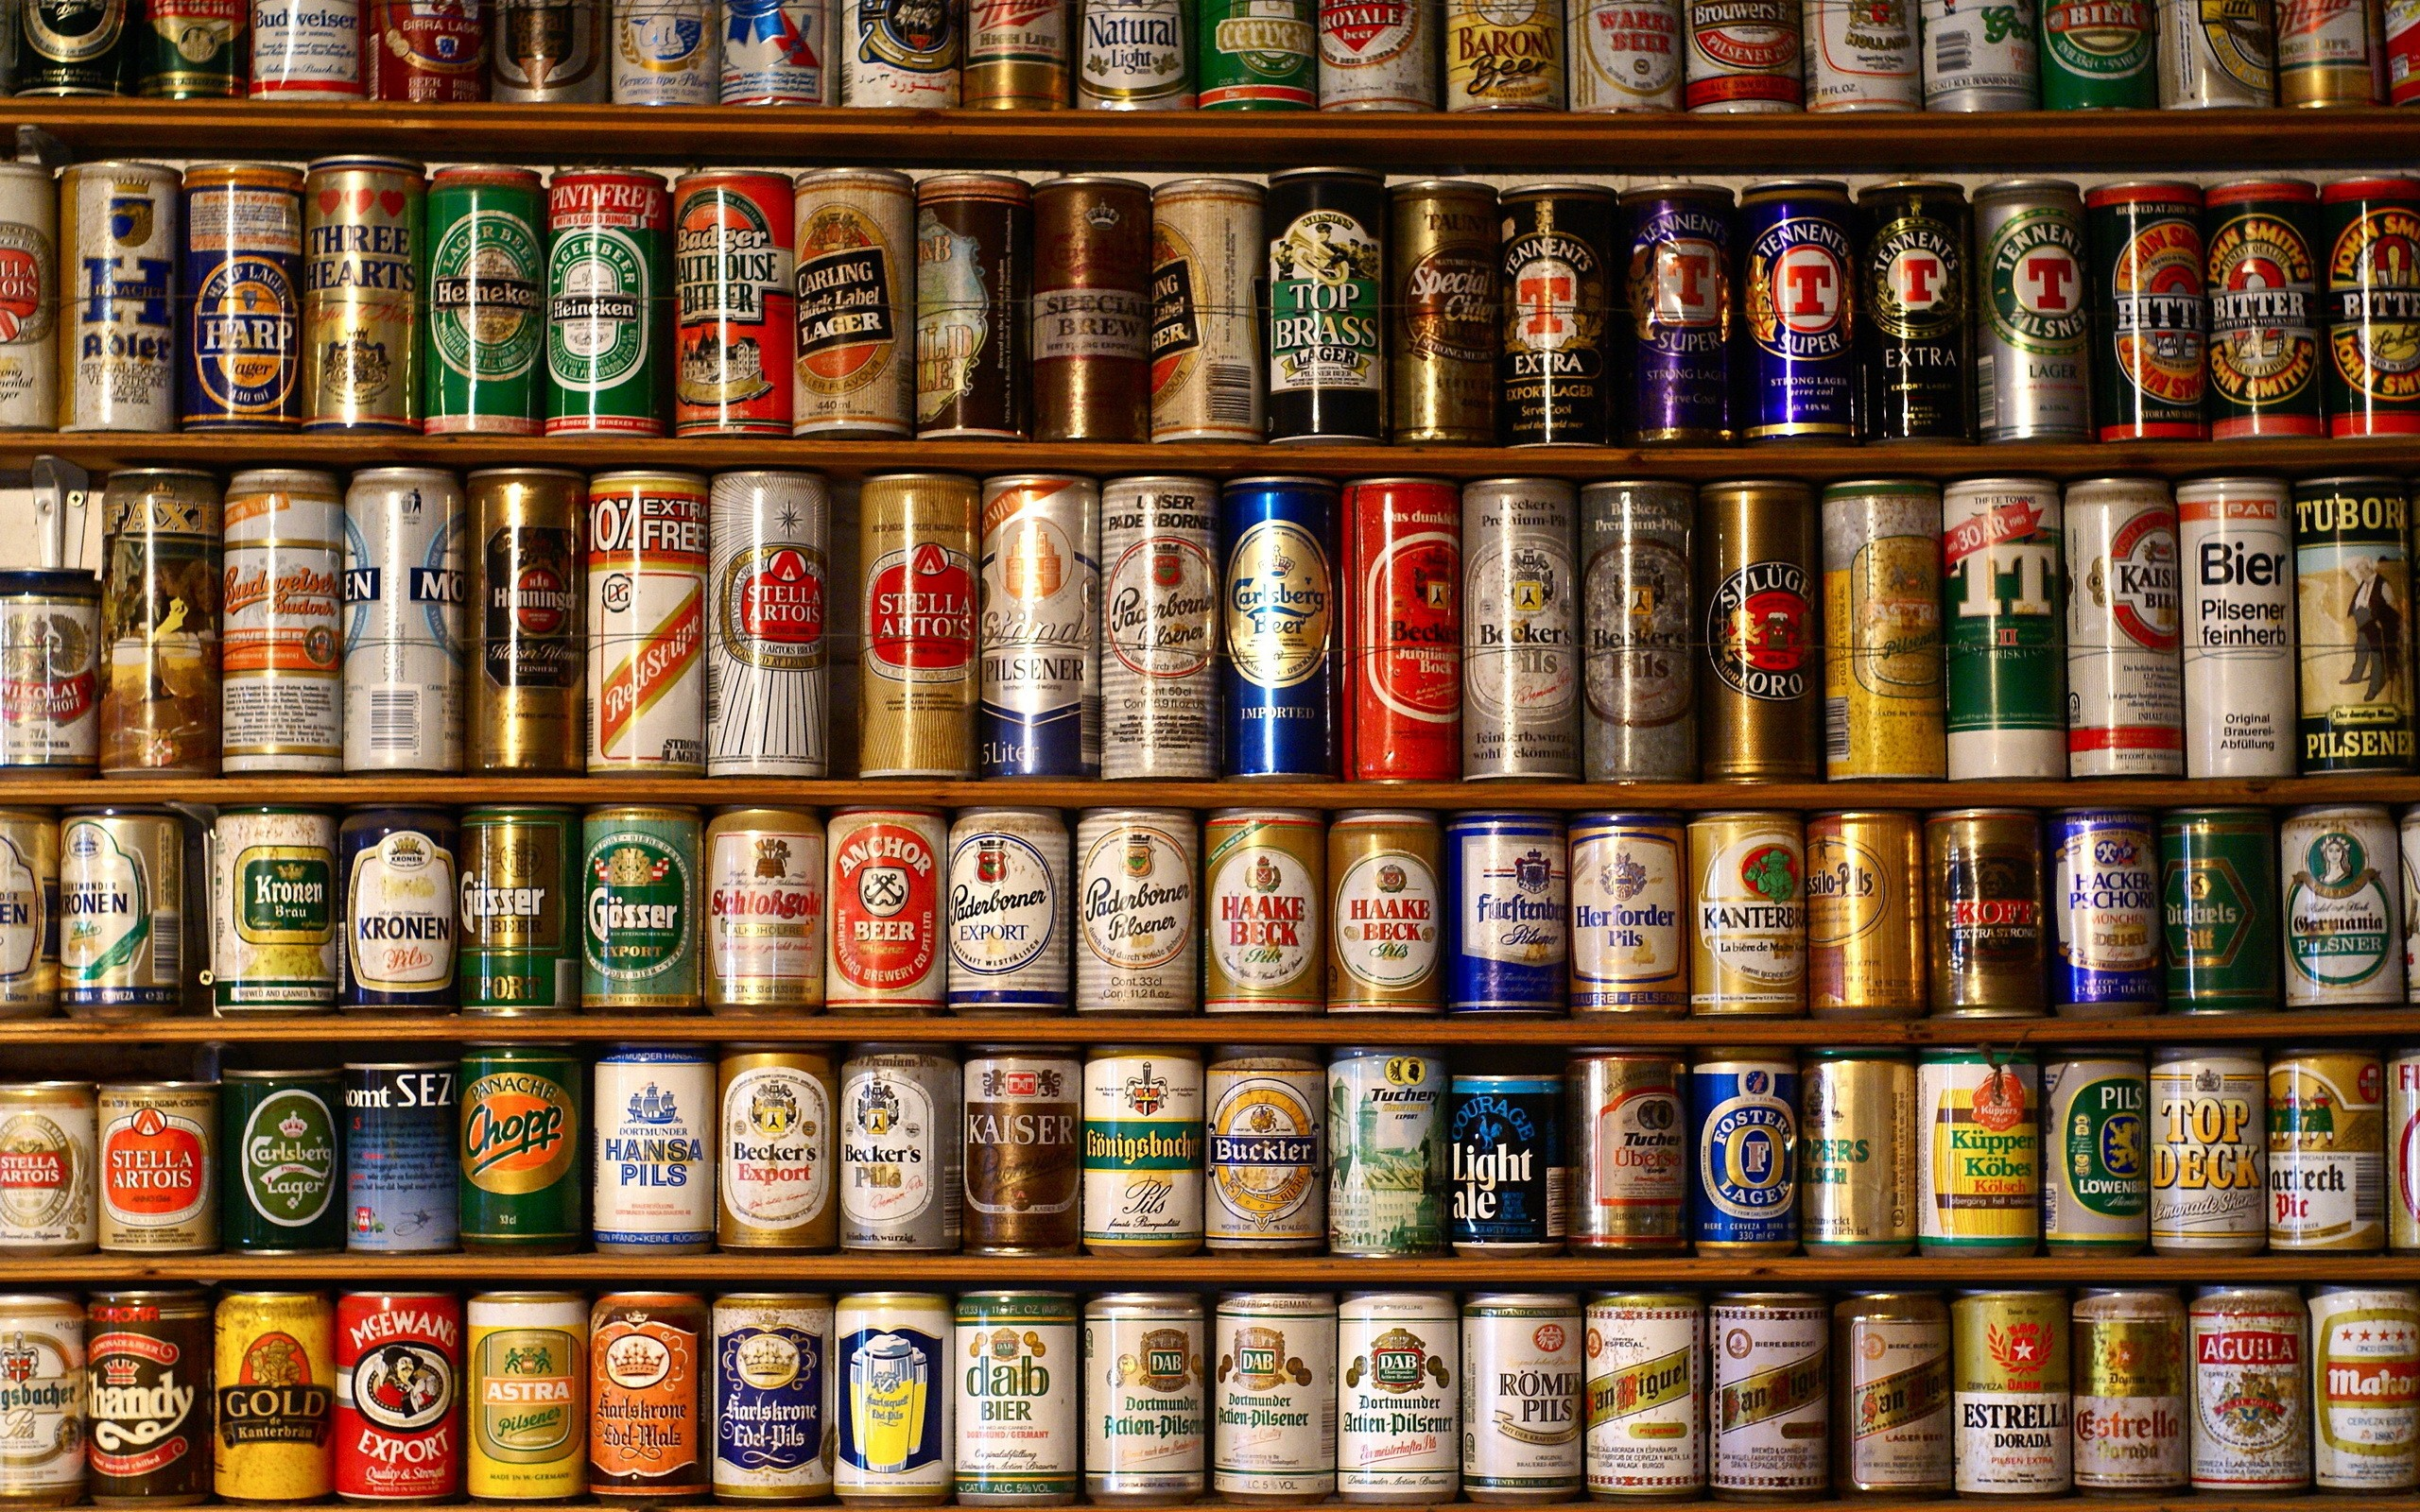 Wallpapers Wall of Beer Myspace Backgrounds Wall of Beer Backgrounds 2560x1600